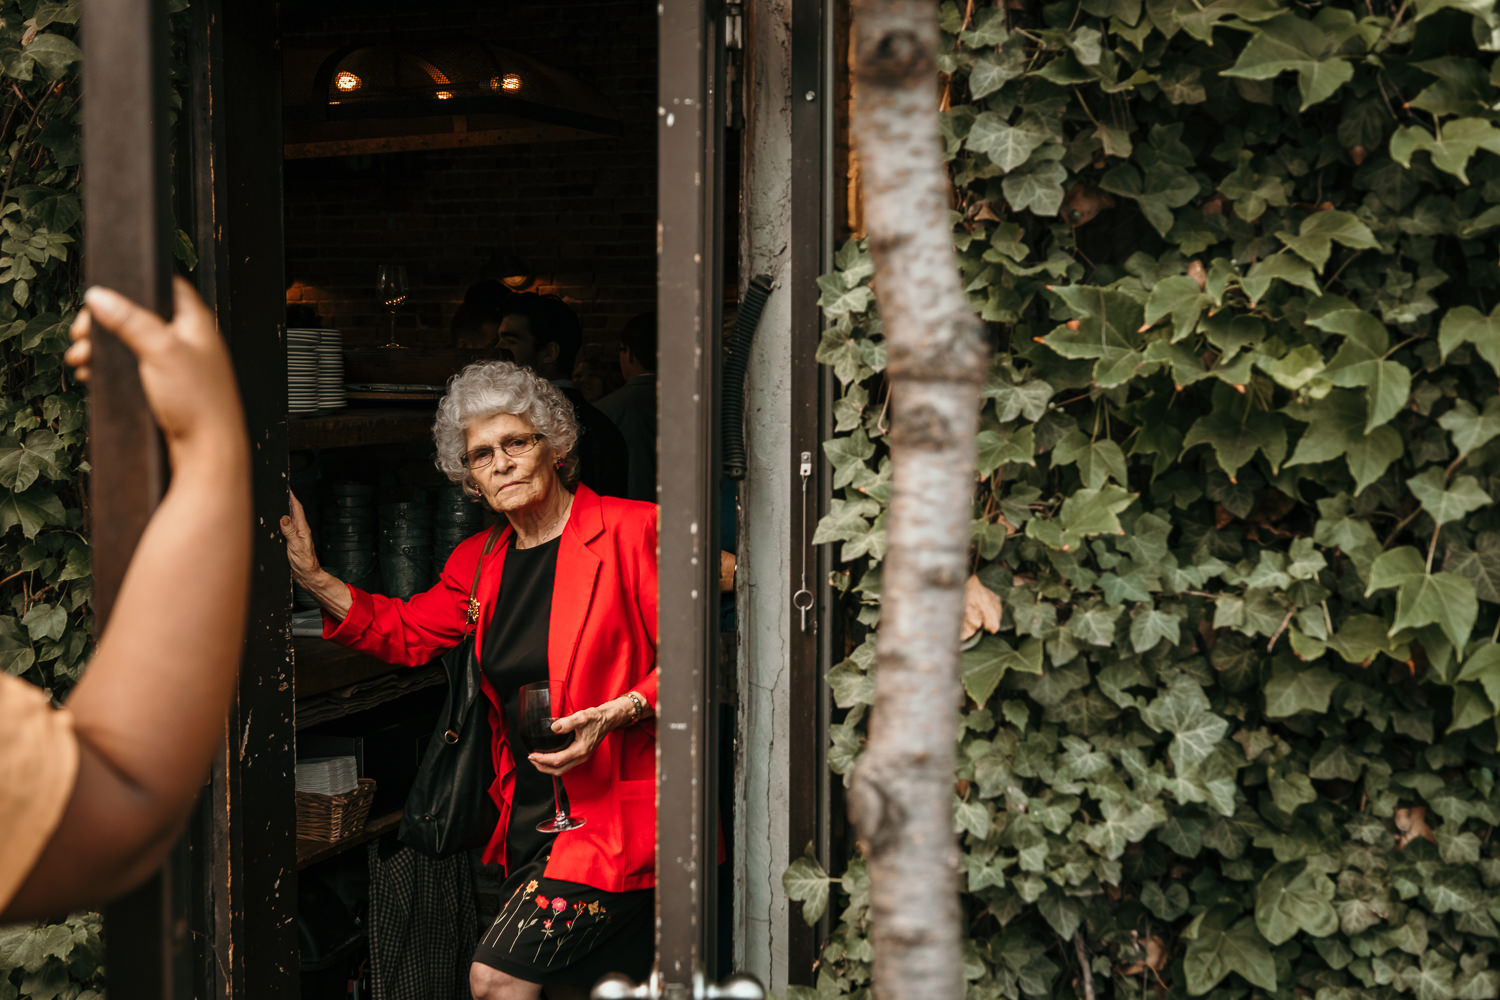 outside looking in, older lady wearing black dress and red blazer resting on the door